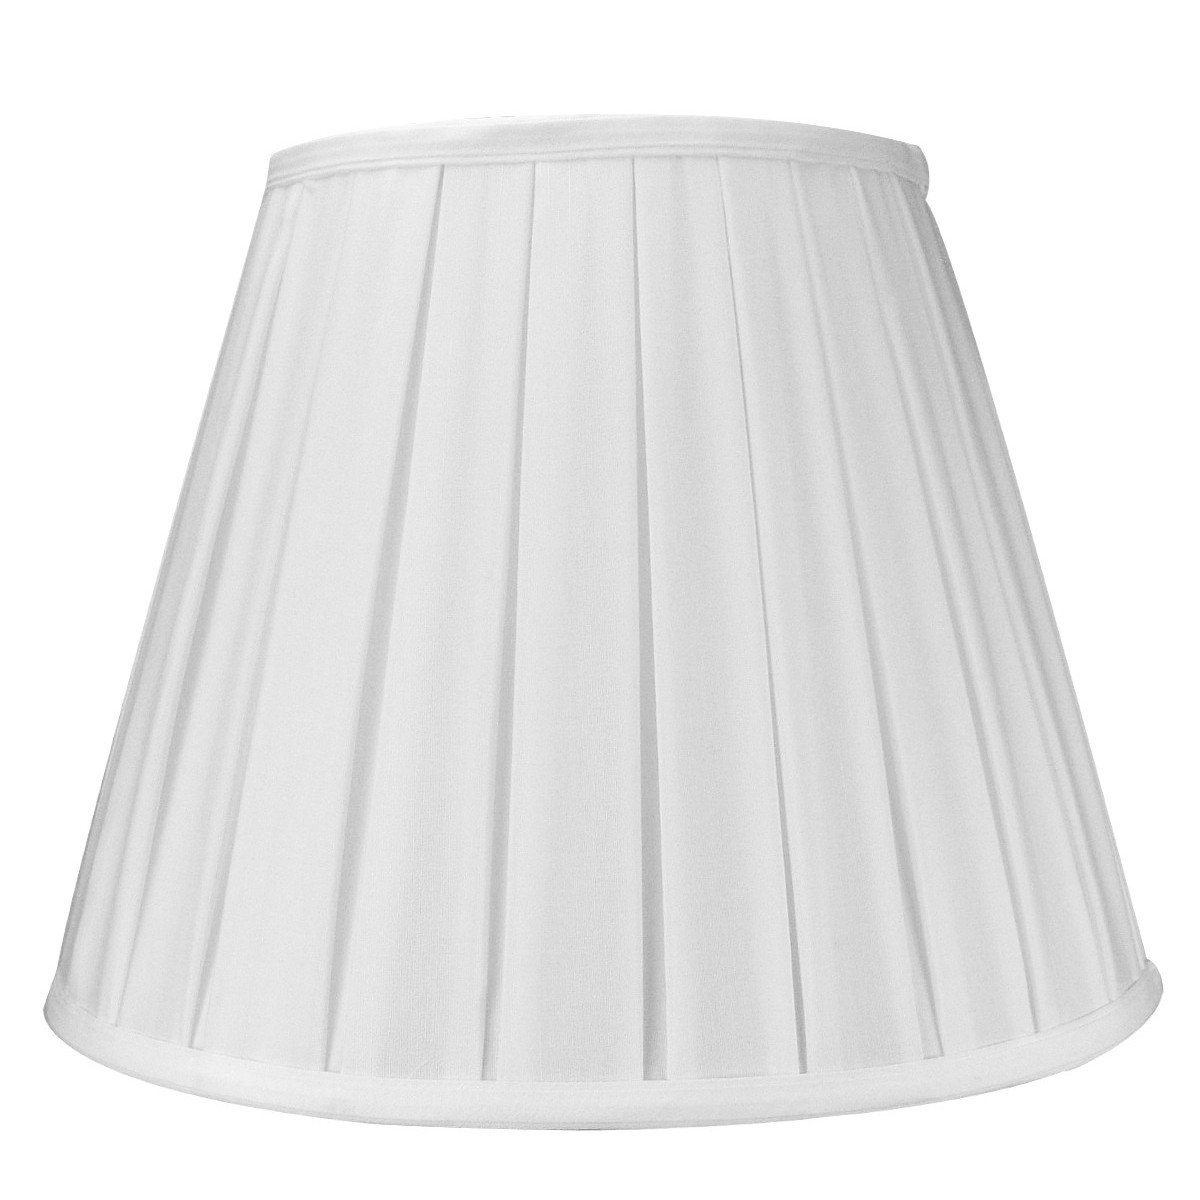 8x14x11 Empire Box Pleat Shade White with Brass Spider Fitter by Home Concept - Perfect for Table Lamps and Some Desk Lamps -Medium, White